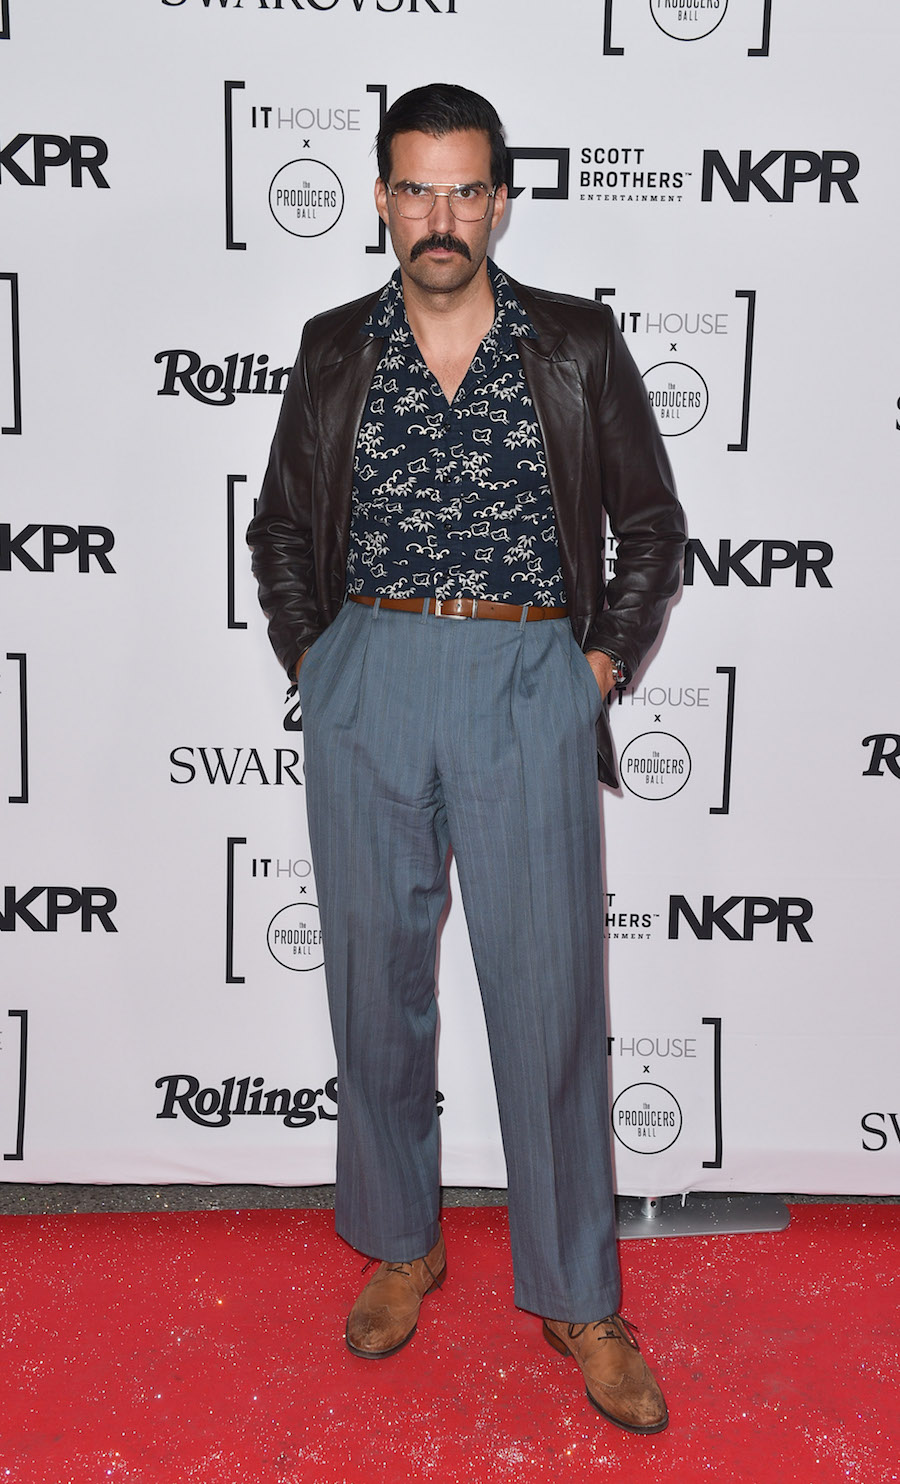 Benjamin Ayres at the IT House x Producers Ball (Photo: Courtesy of NKPR) | View the VIBE